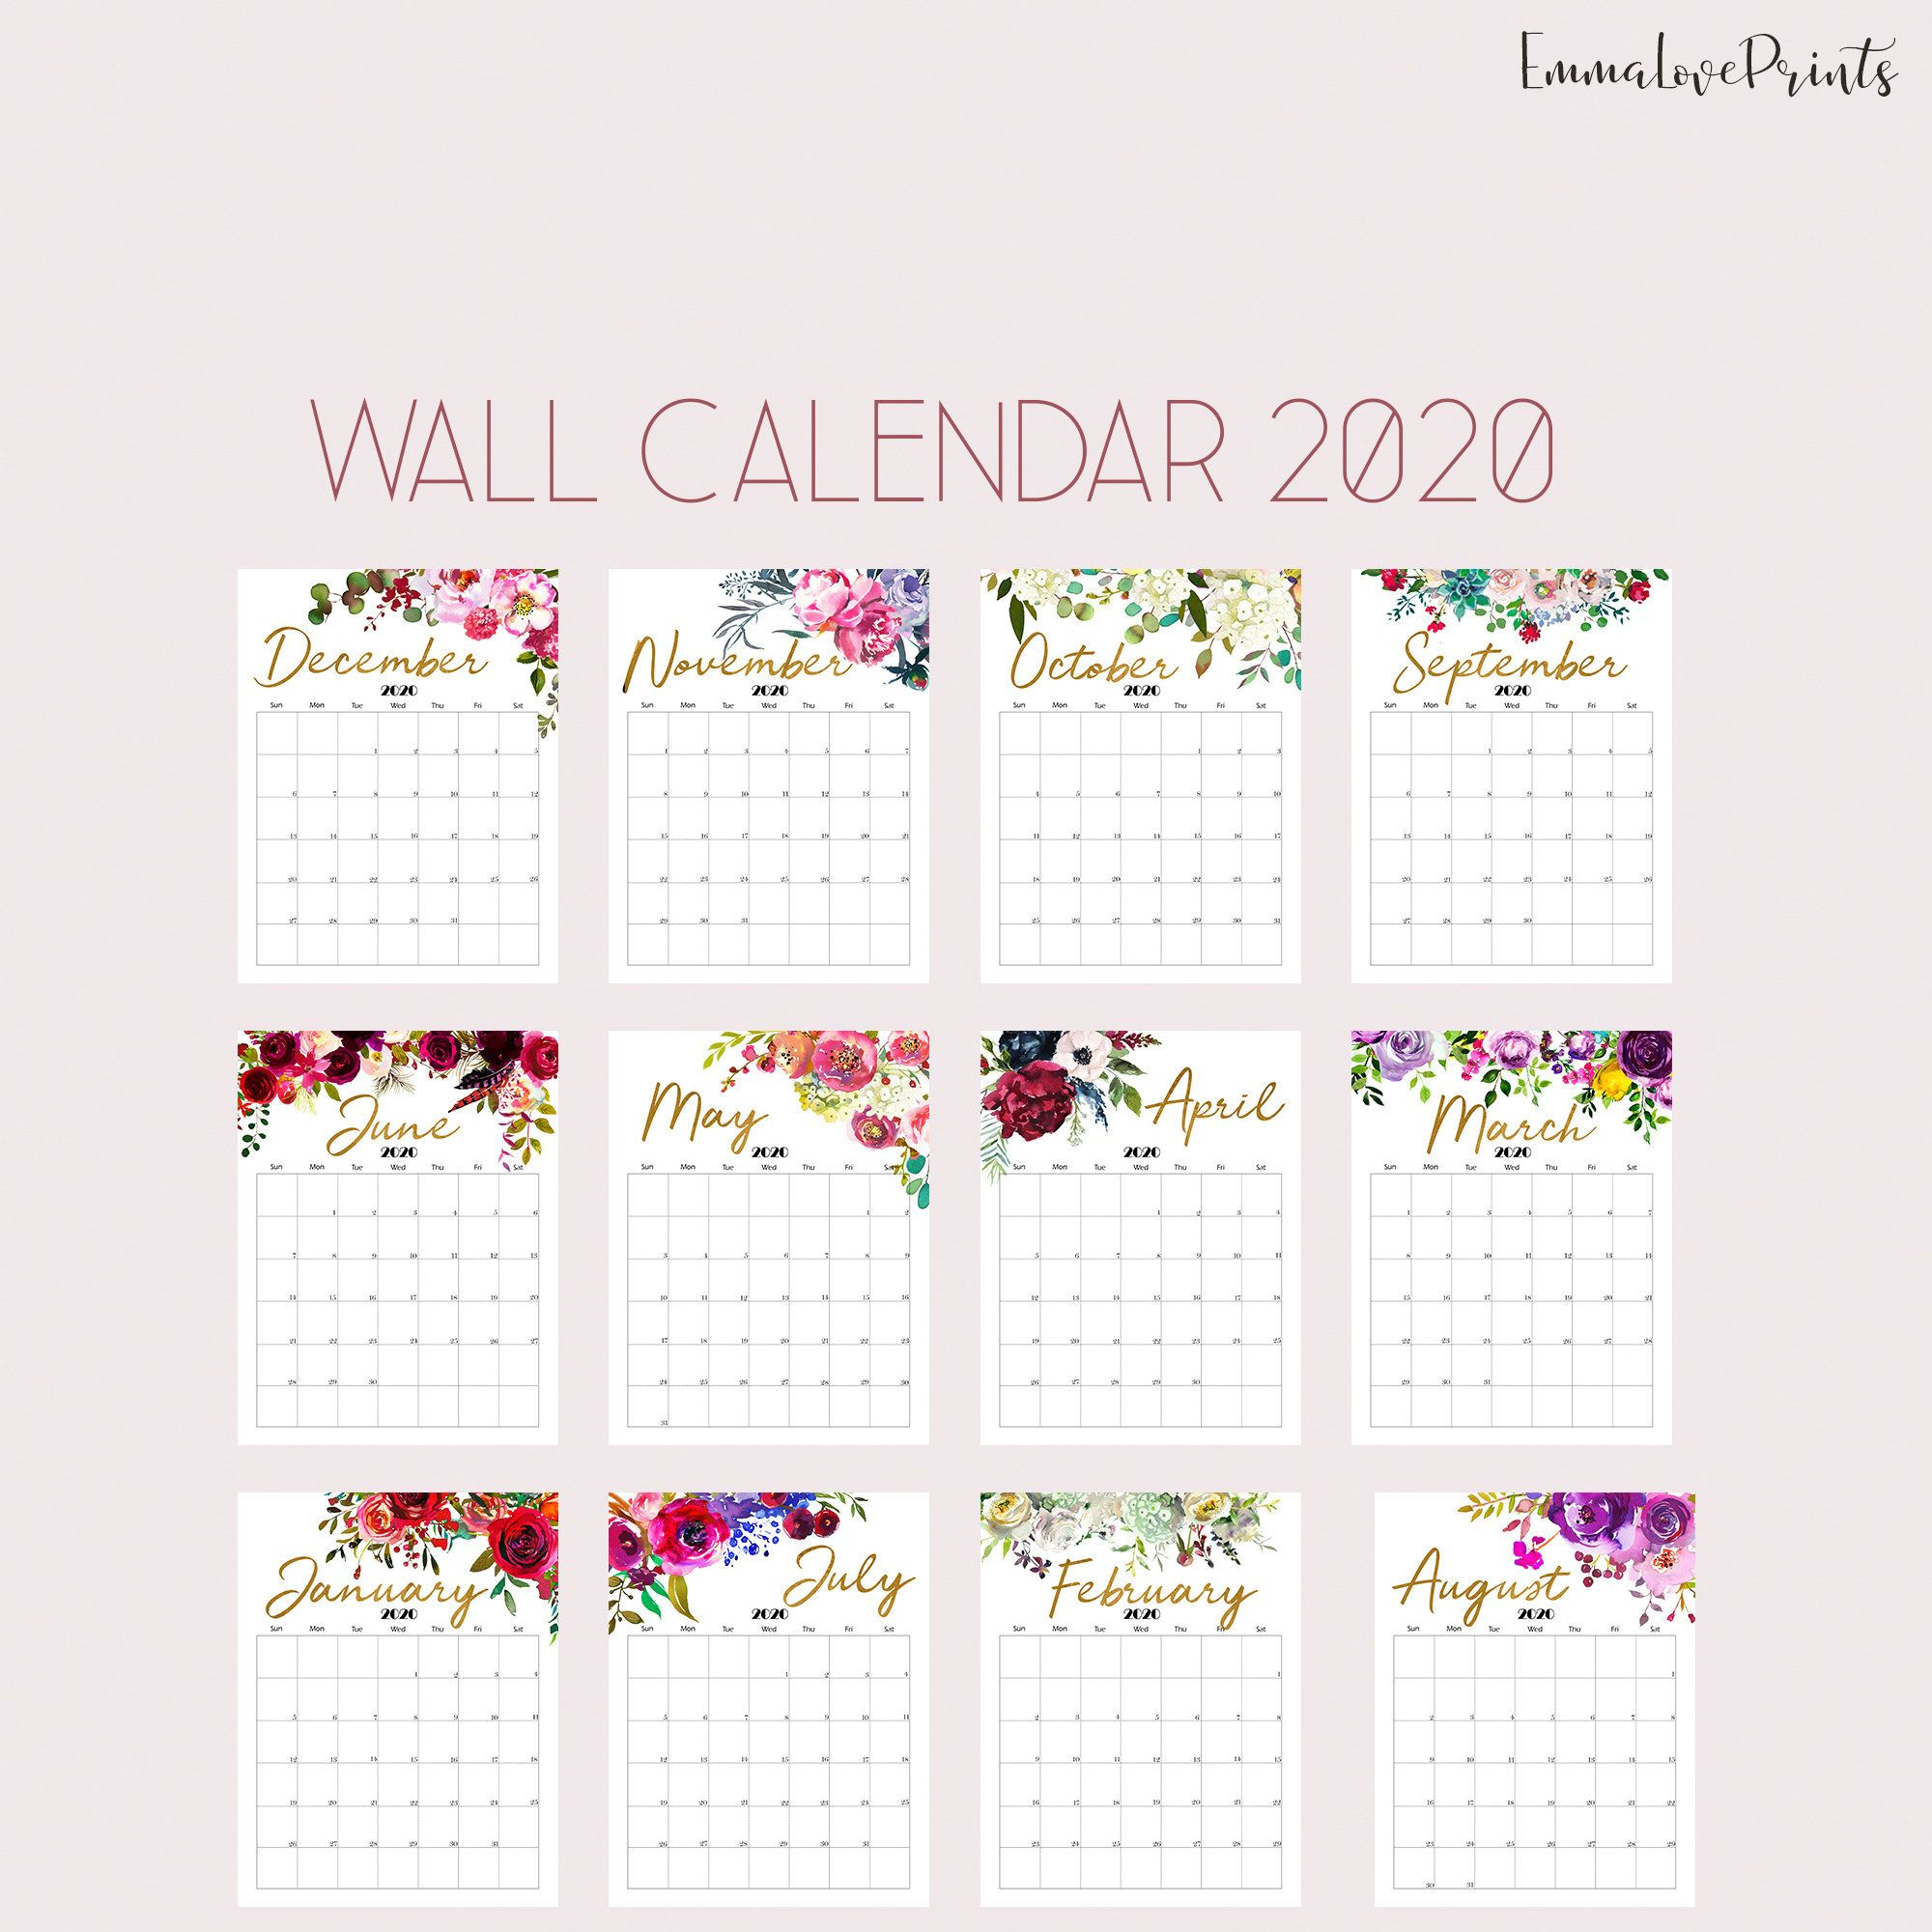 picture regarding Calendar 2020 Printable identified as Printable Calendar 2020 Wall Calendar 2020 Table Calendar